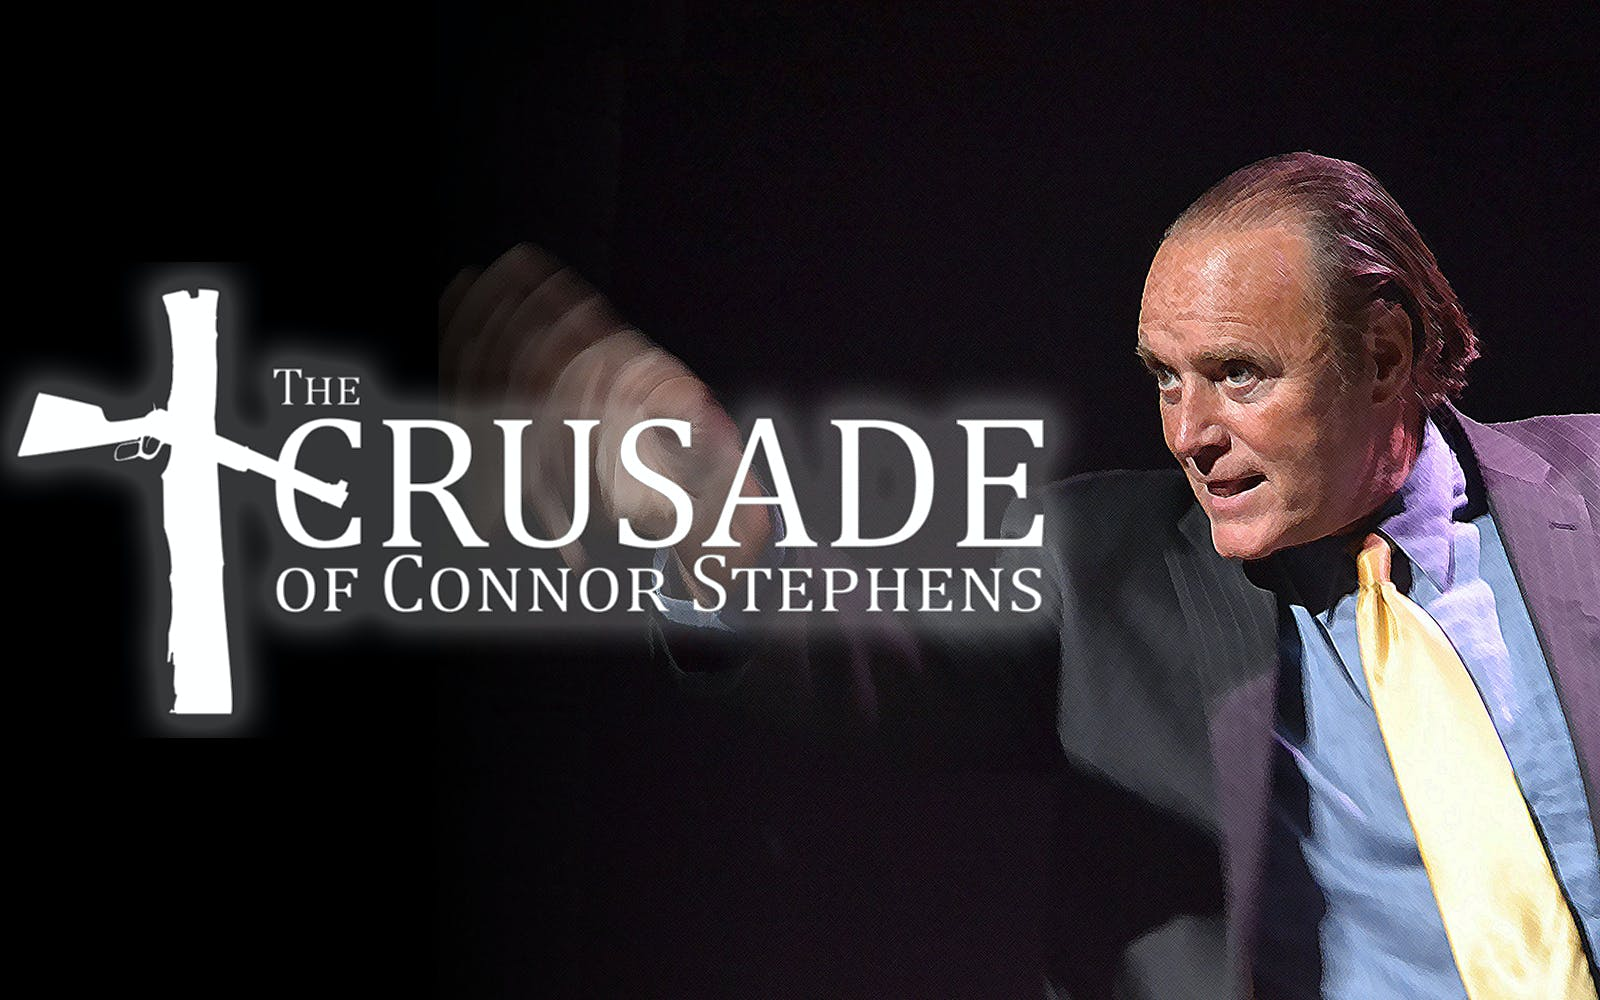 the crusade of connor stephens-1